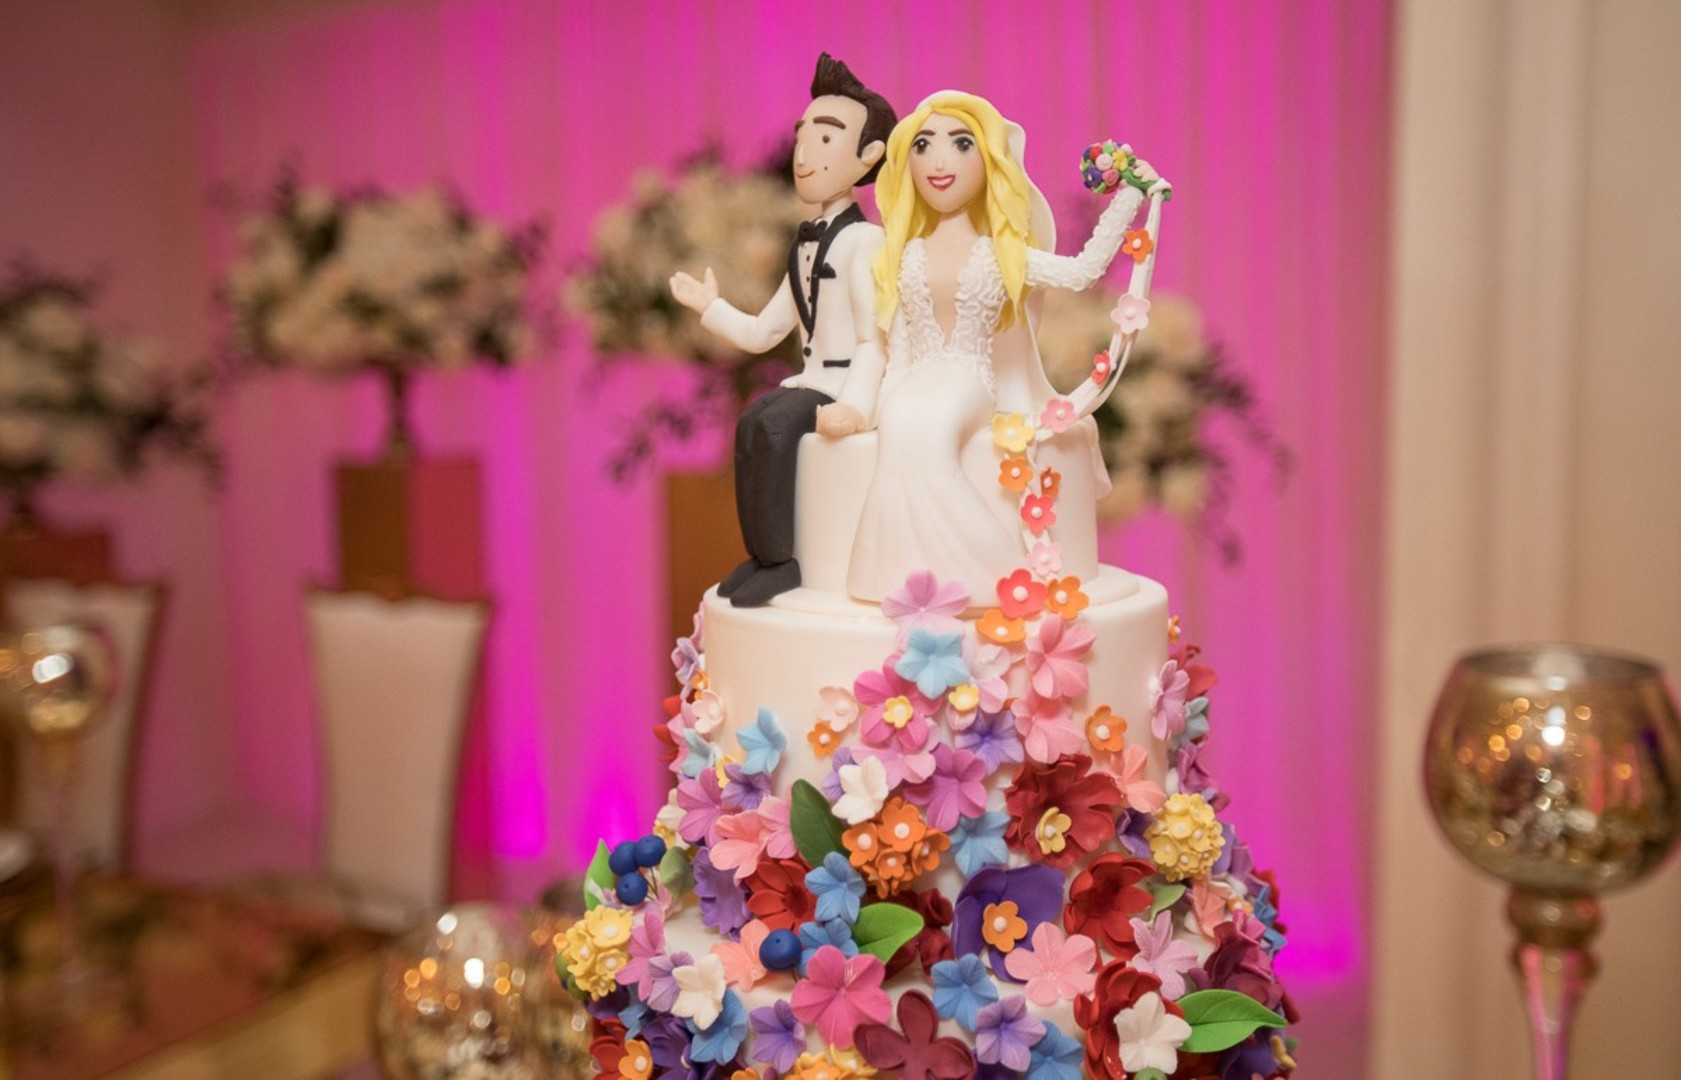 DWTS' Emma Slater and Sasha Farber's Wedding, Bella Blanca Event Center, DWTS Wedding Cake, Emma and Sasha's Wedding Cake Topper